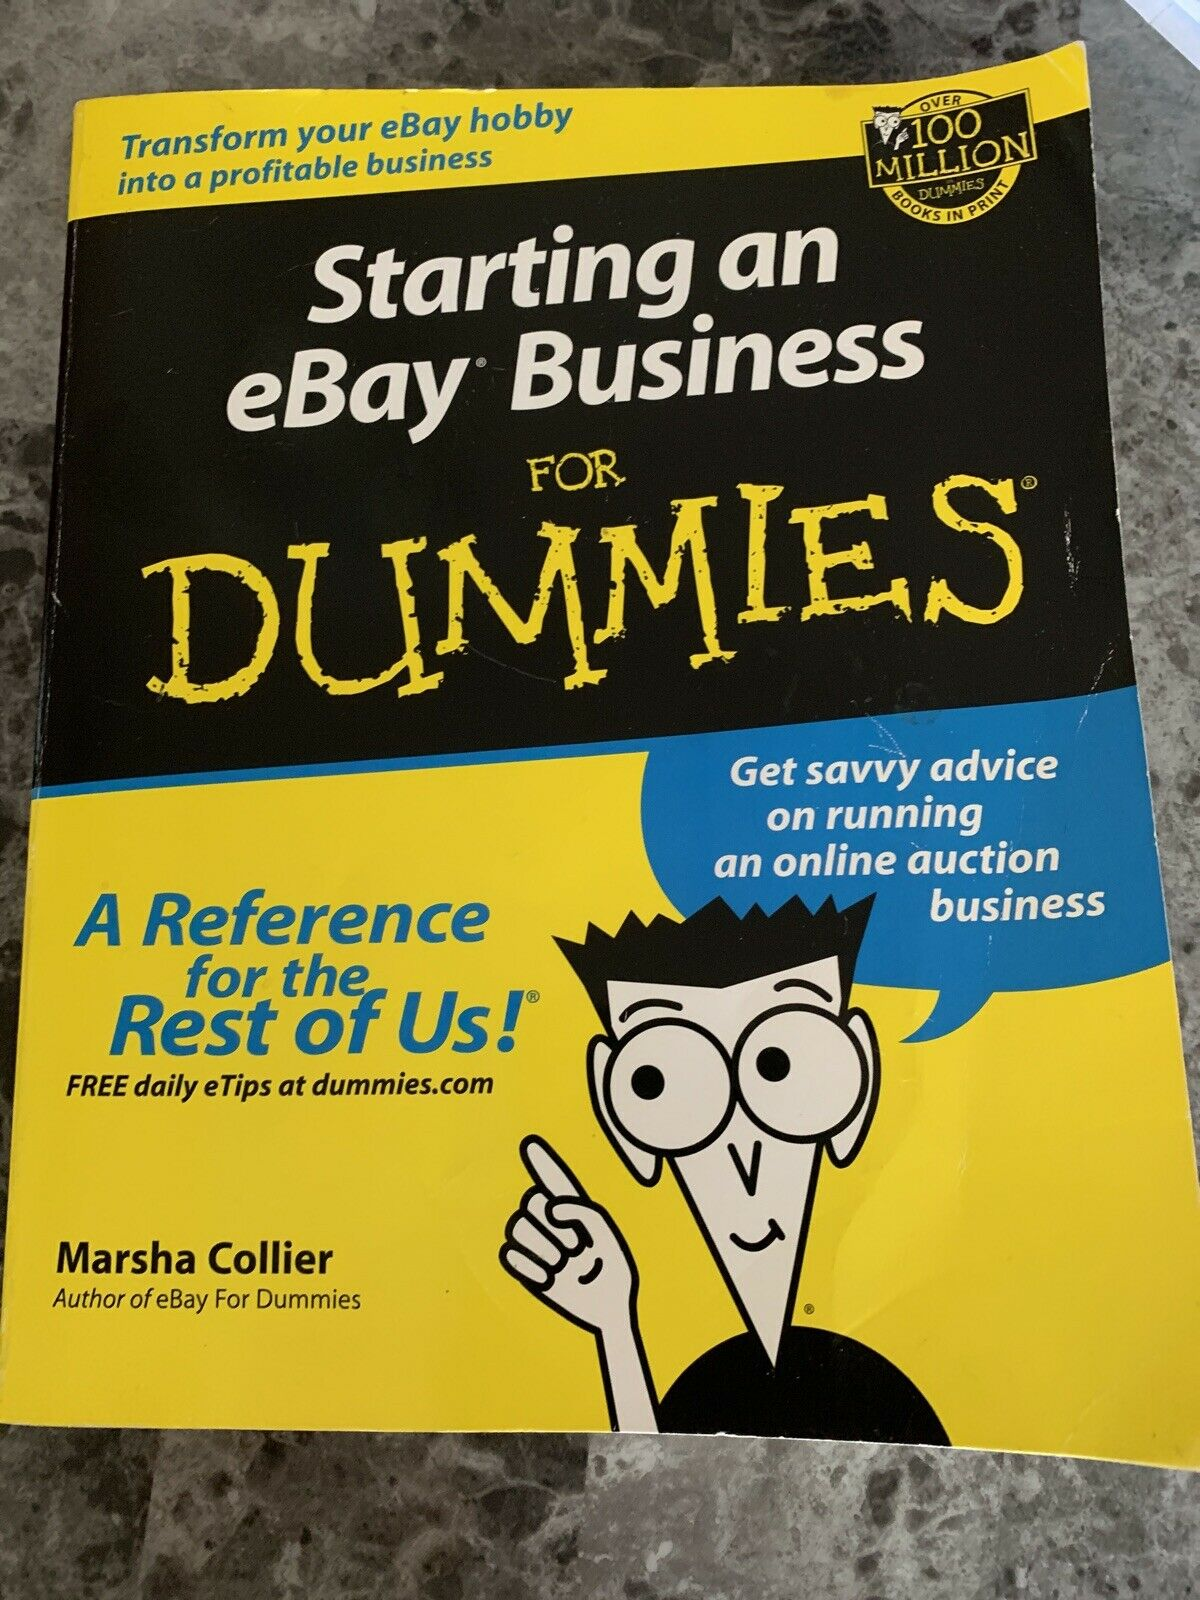 Starting An Ebay Business For Dummies By Marsha Collier 2001 Trade Paperback For Sale Online Ebay